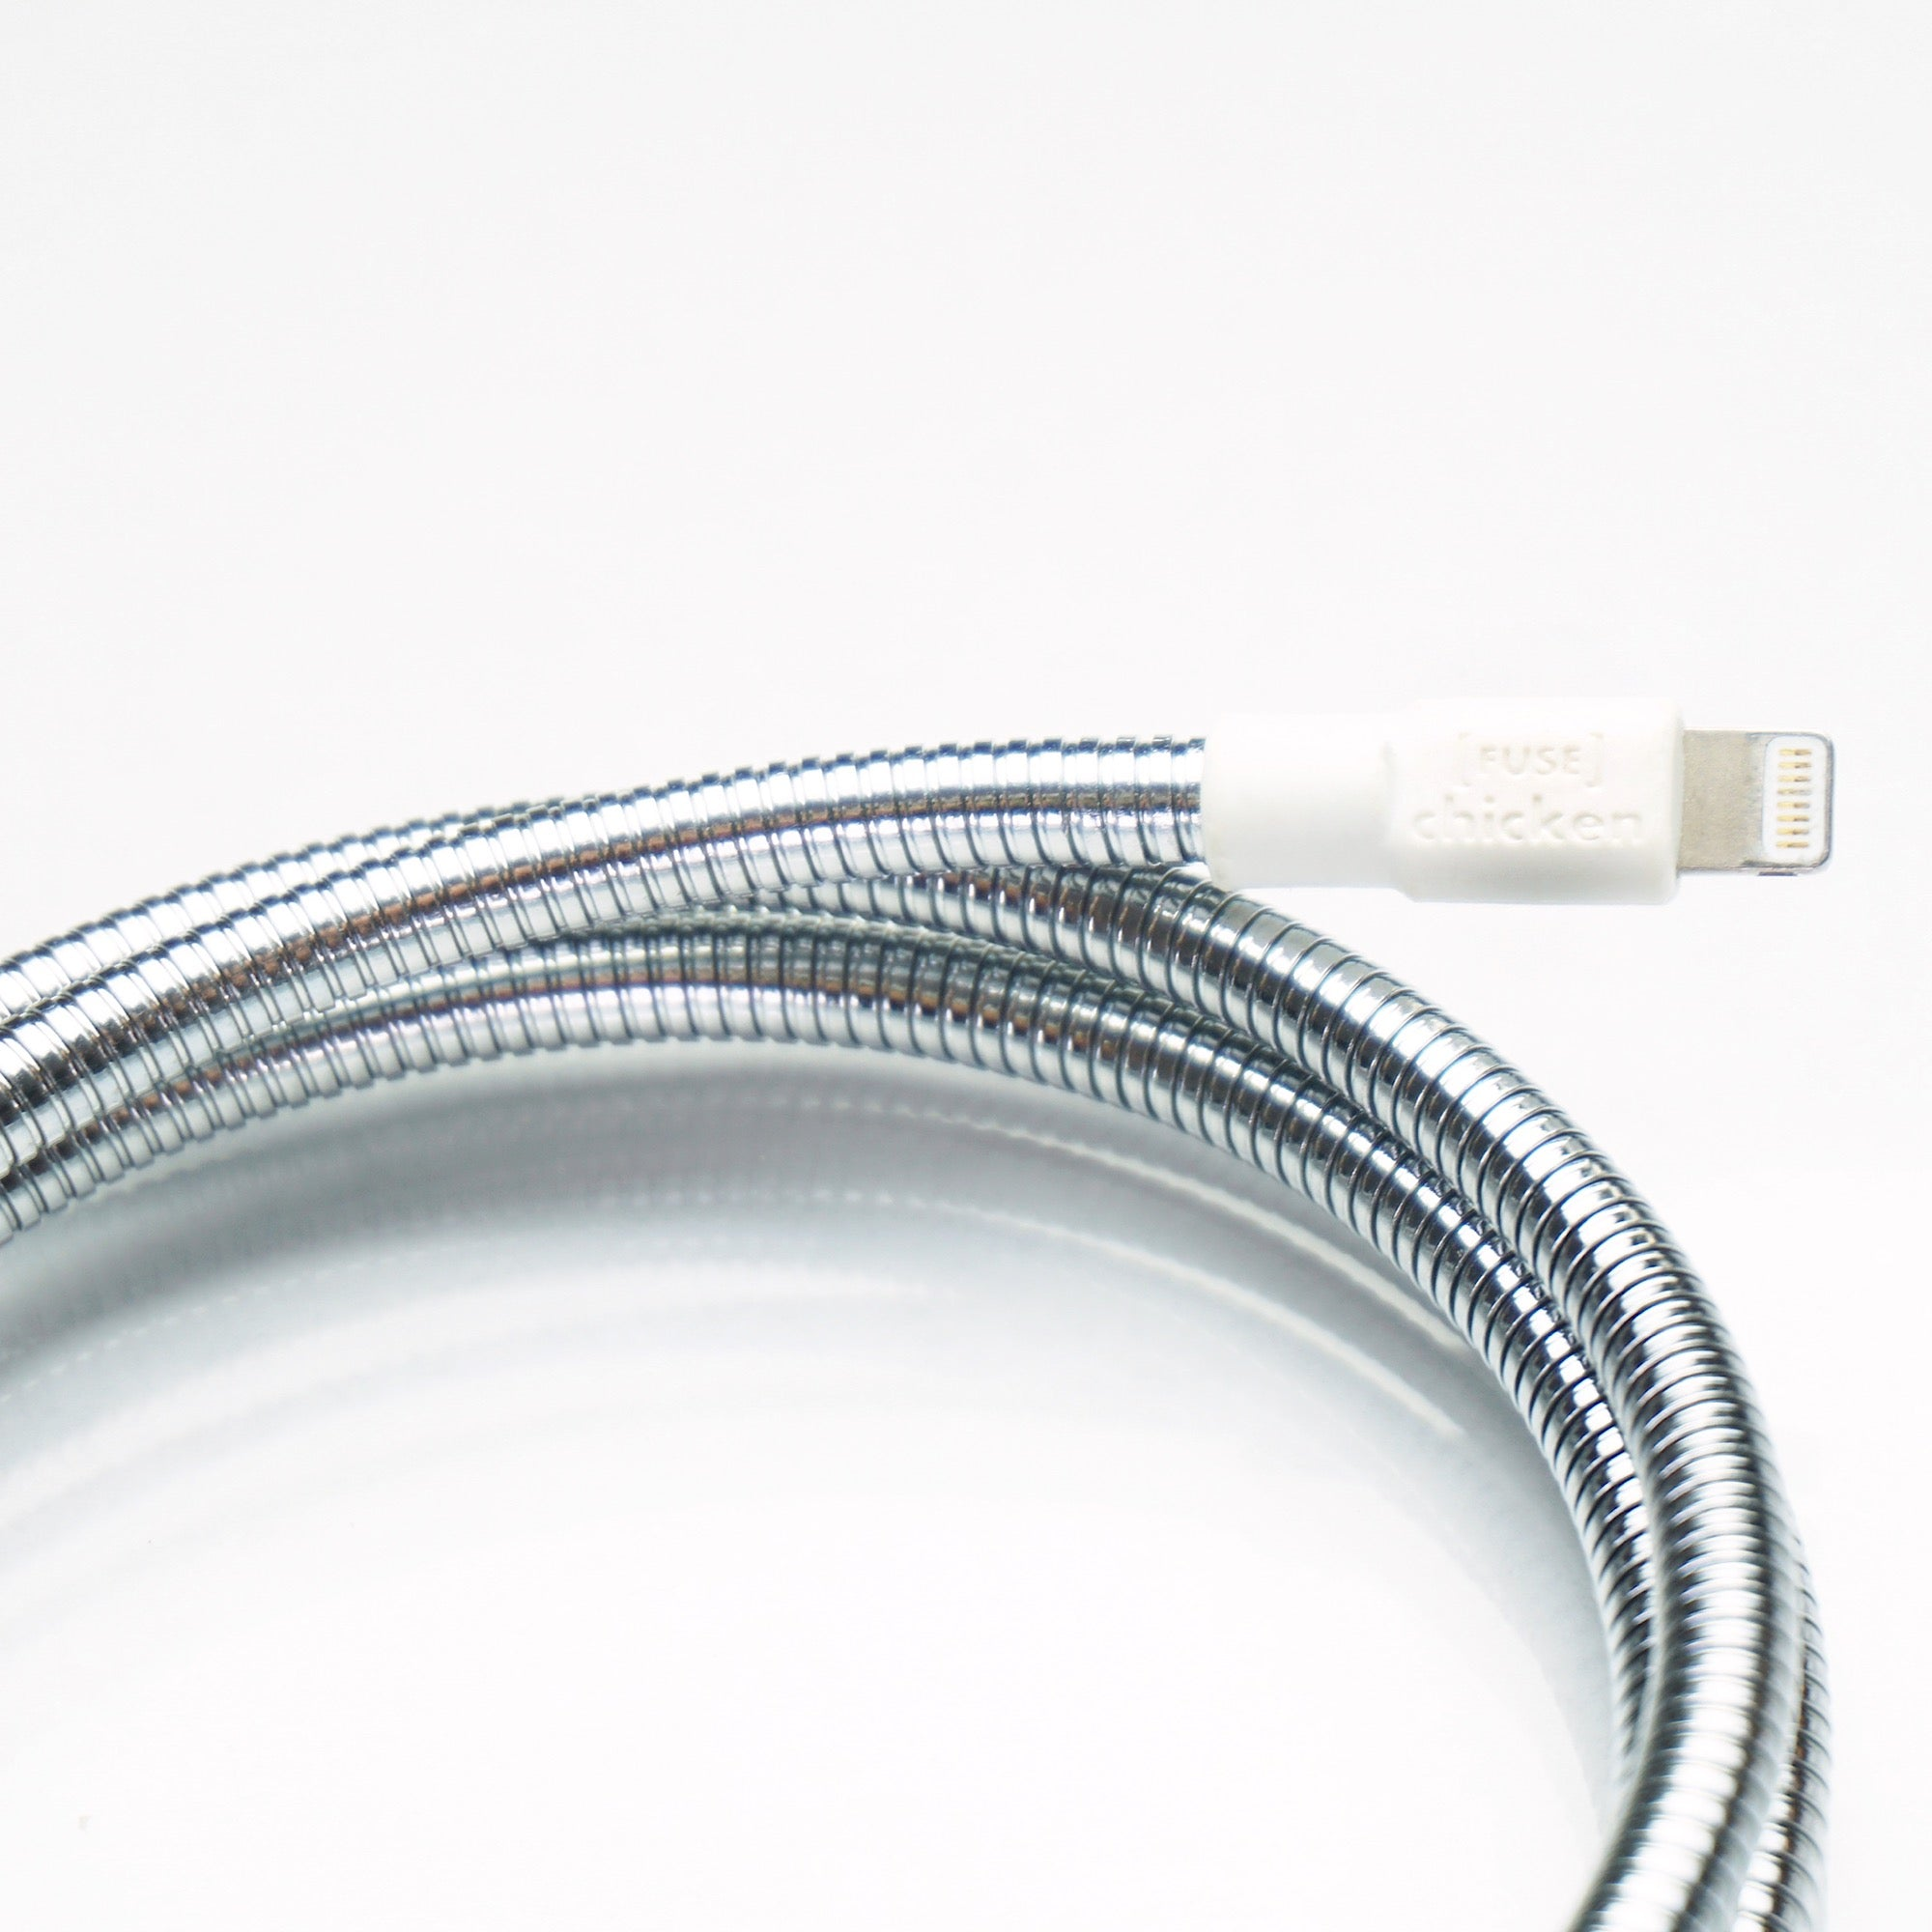 Marvelous No More Frayed Iphone Cables Titan Is The Toughest Cable On Earth Wiring Digital Resources Funapmognl